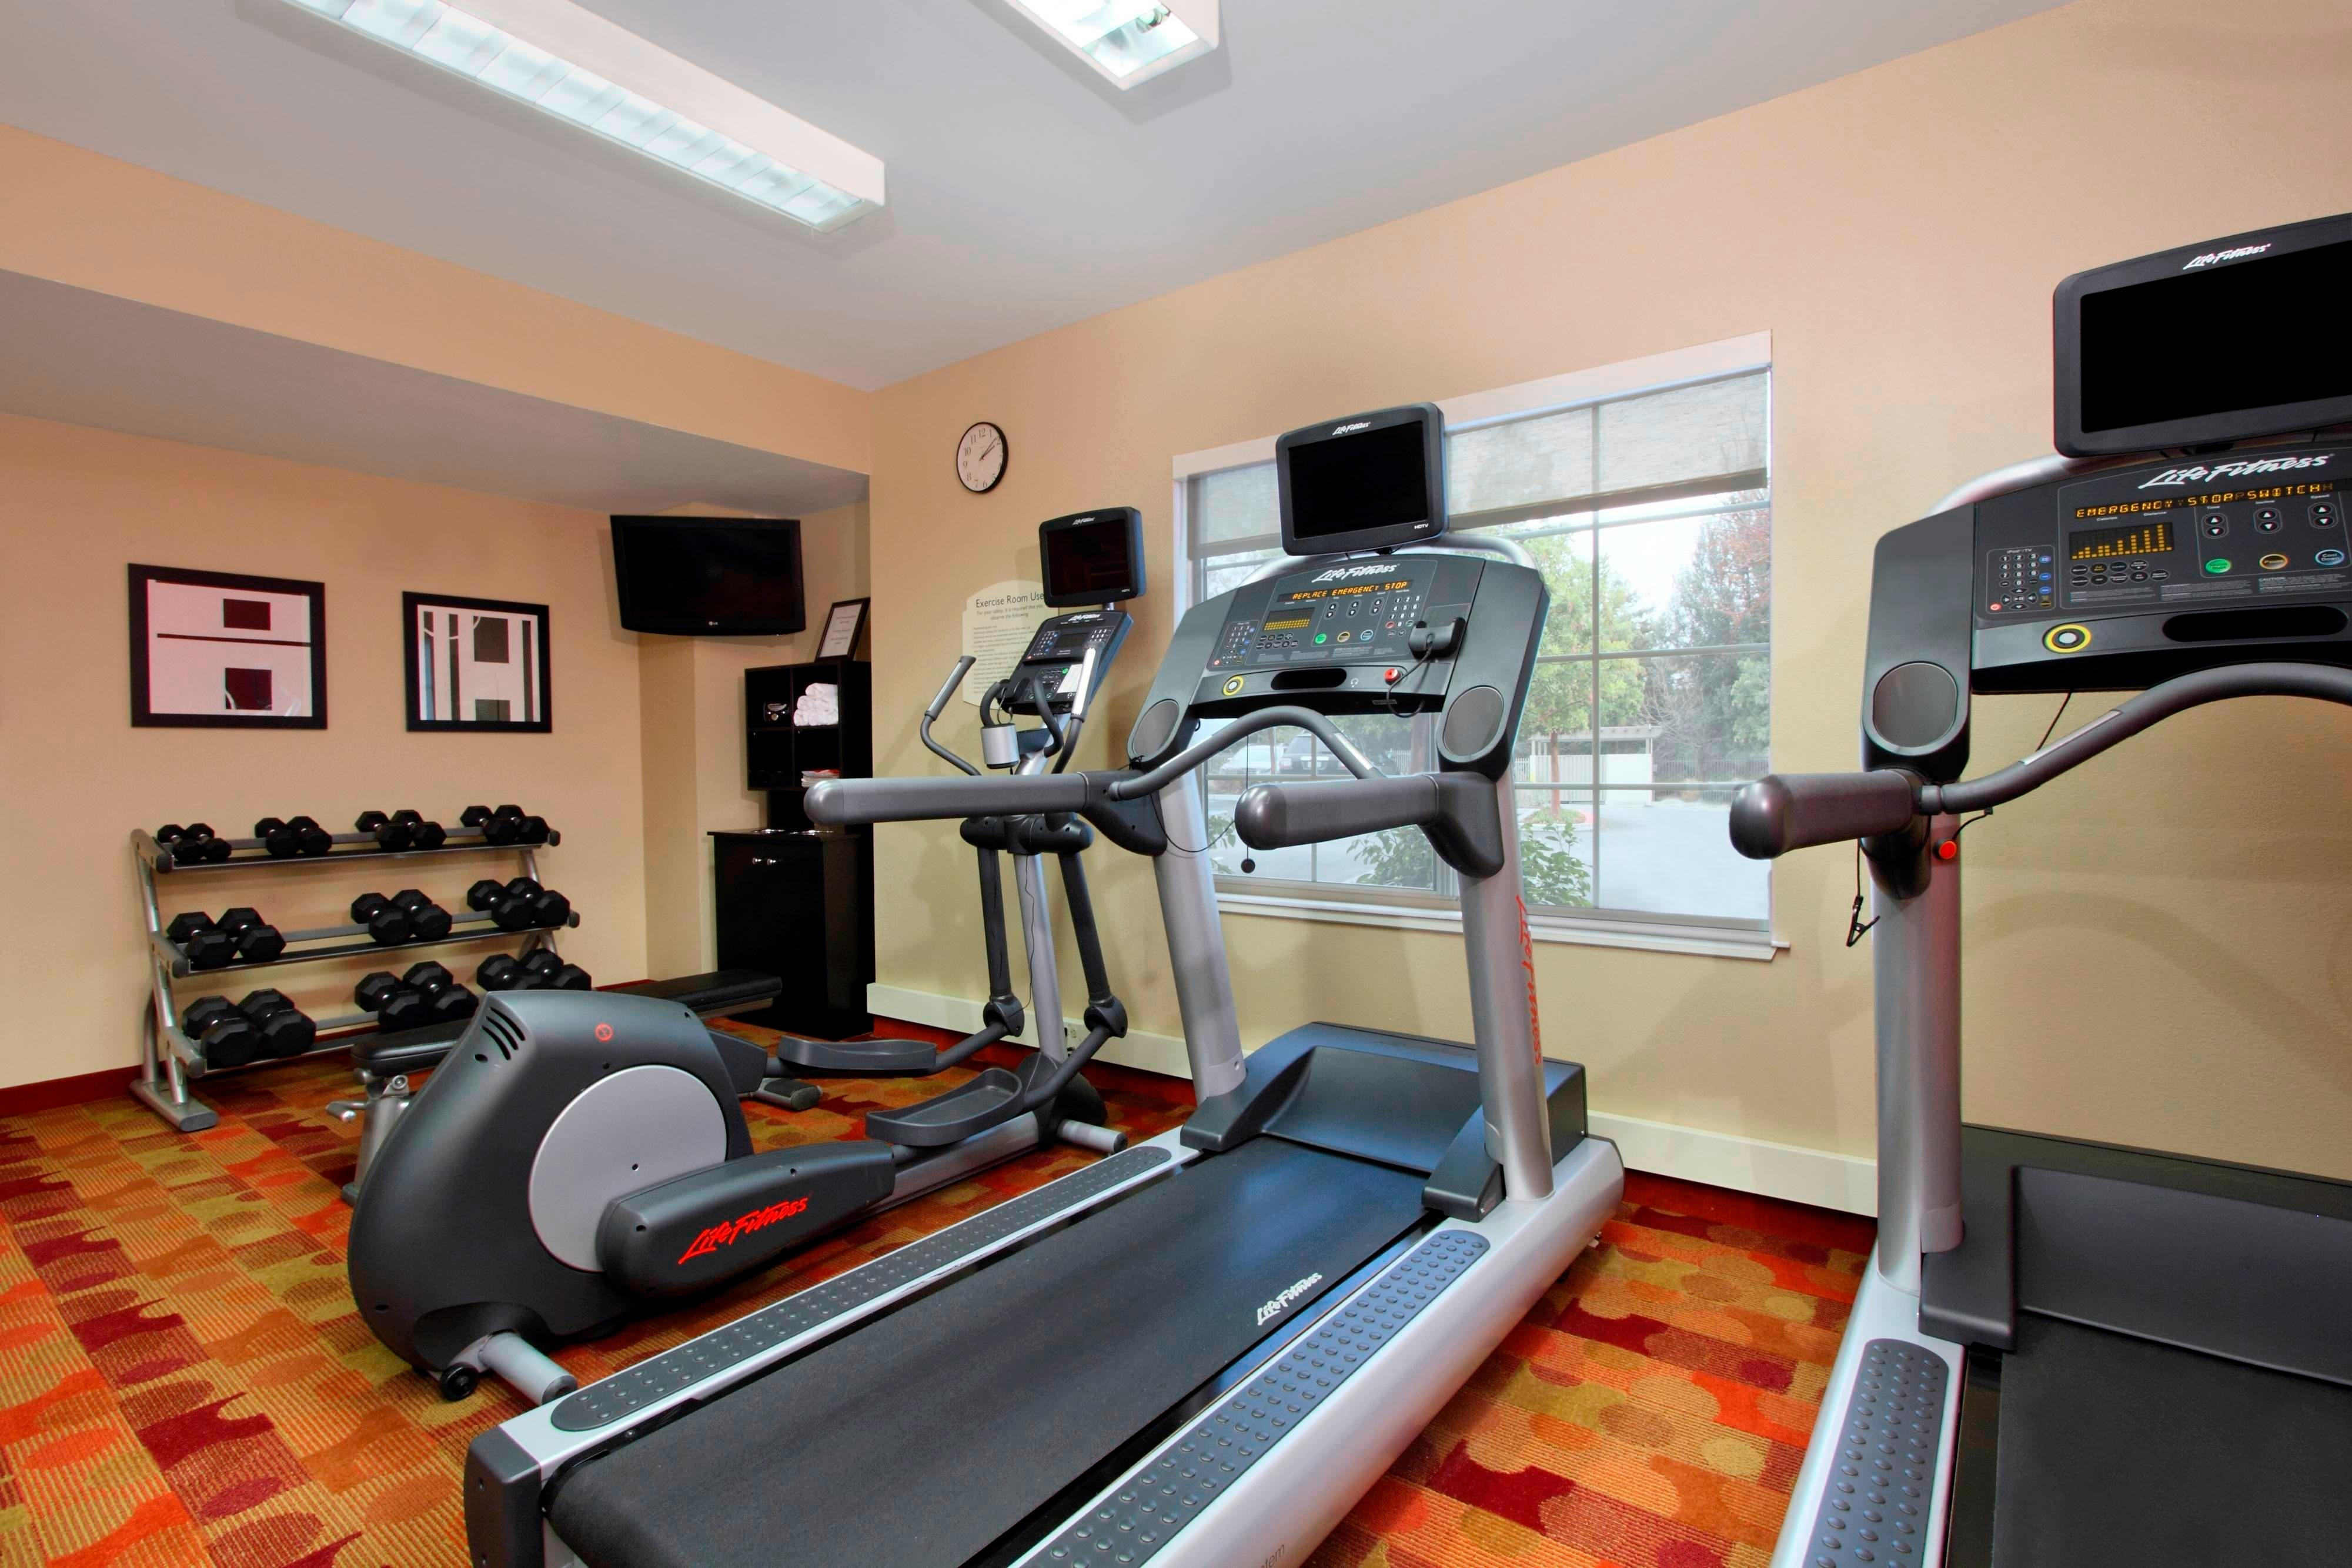 gym, fitness center, treadmill, elliptical, weights